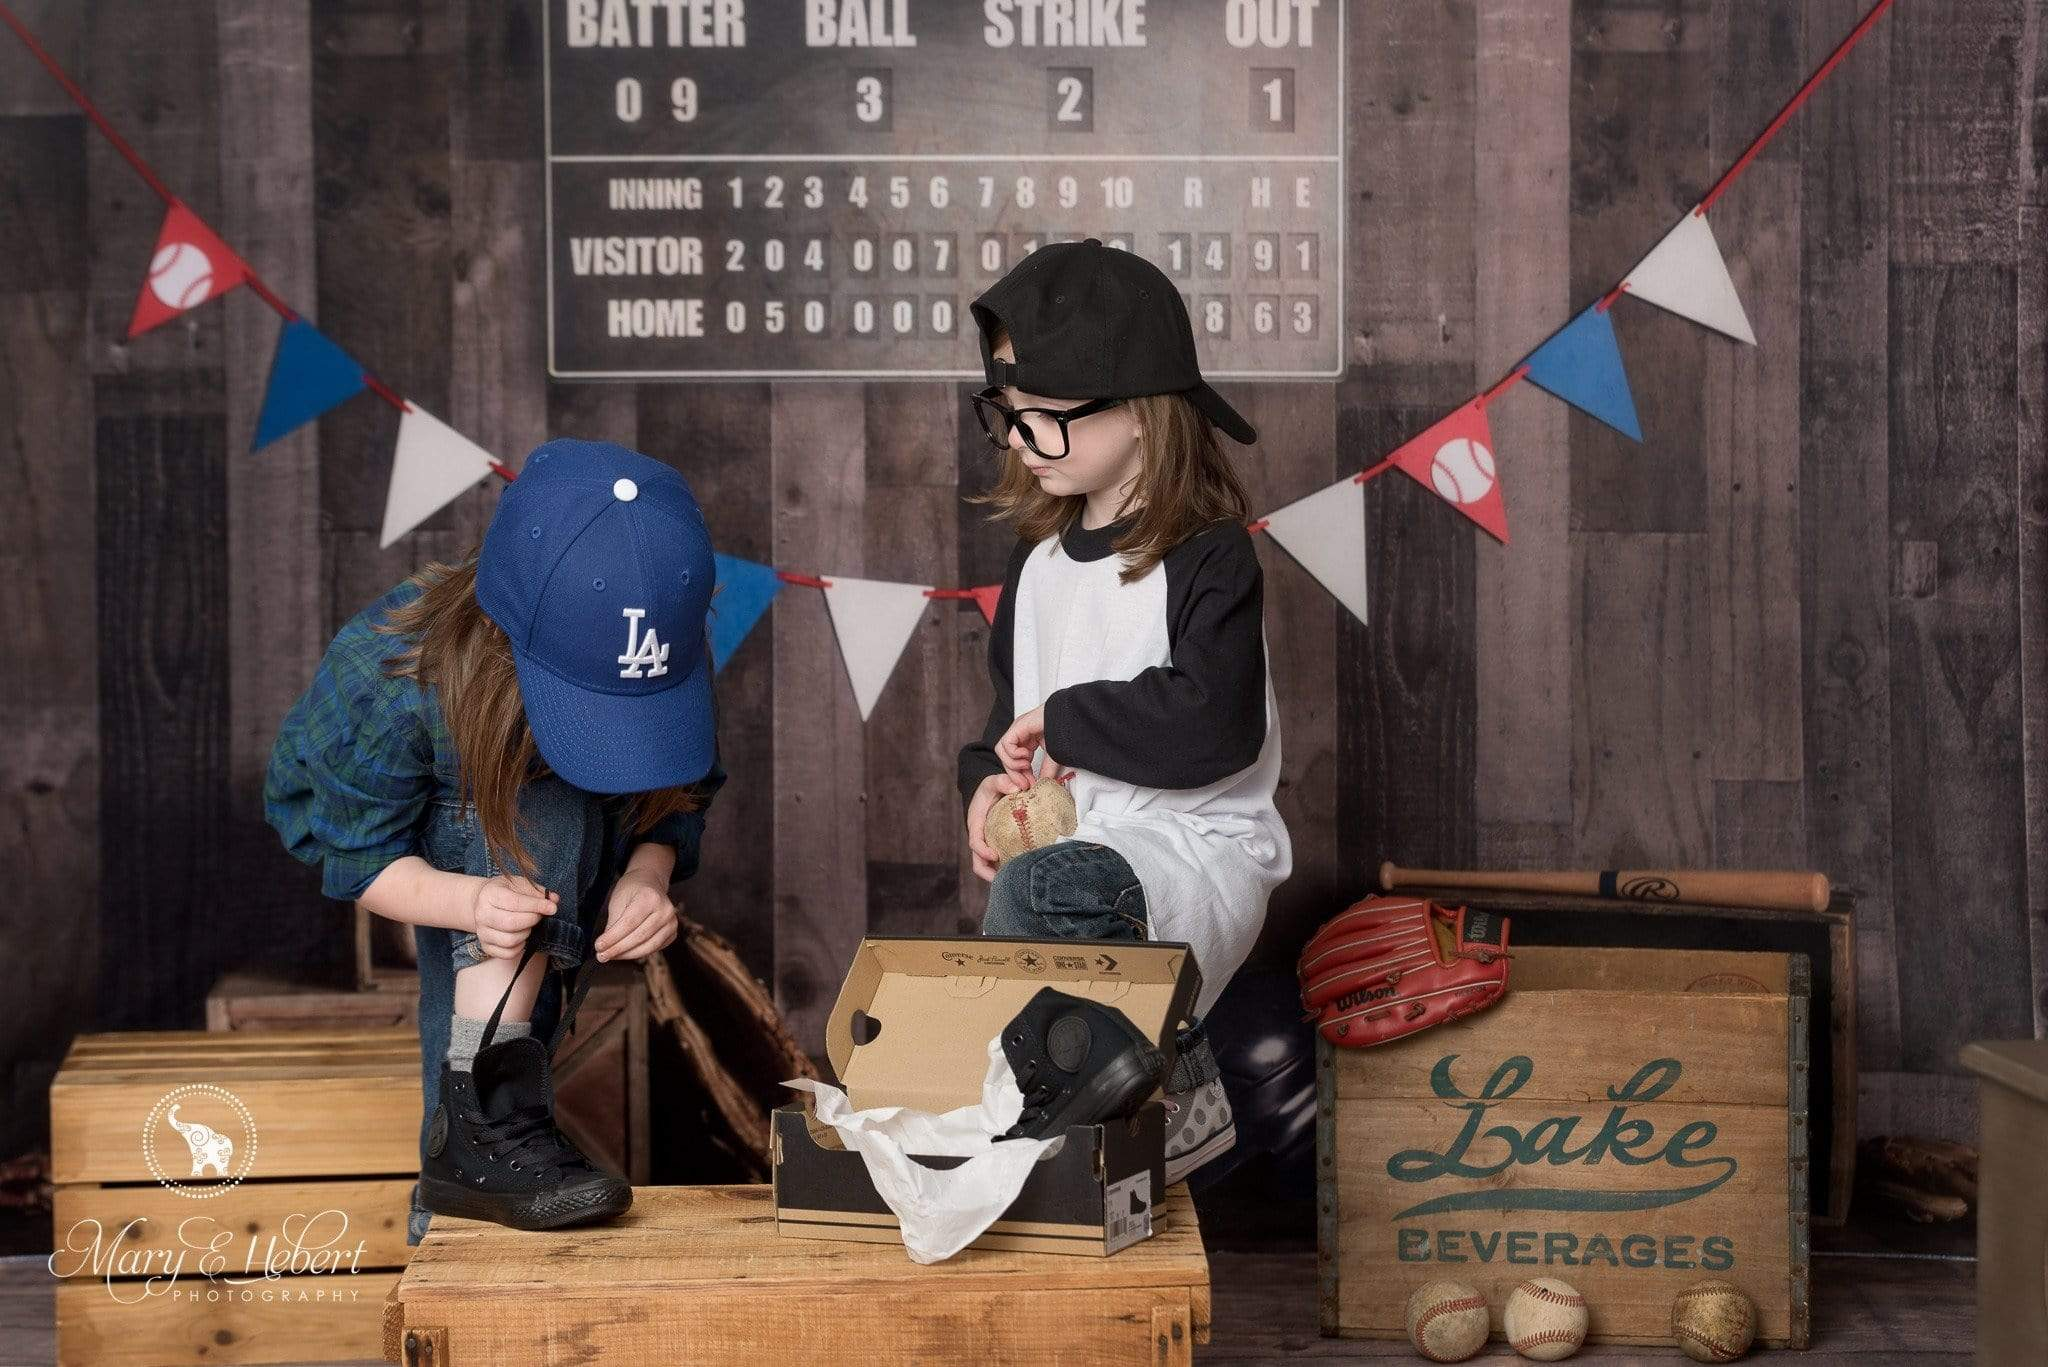 Load image into Gallery viewer, Katebackdrop£ºKate Vintage Baseball with Scoreboard Sport Backdrop for Photography Designed By Mandy Ringe Photography